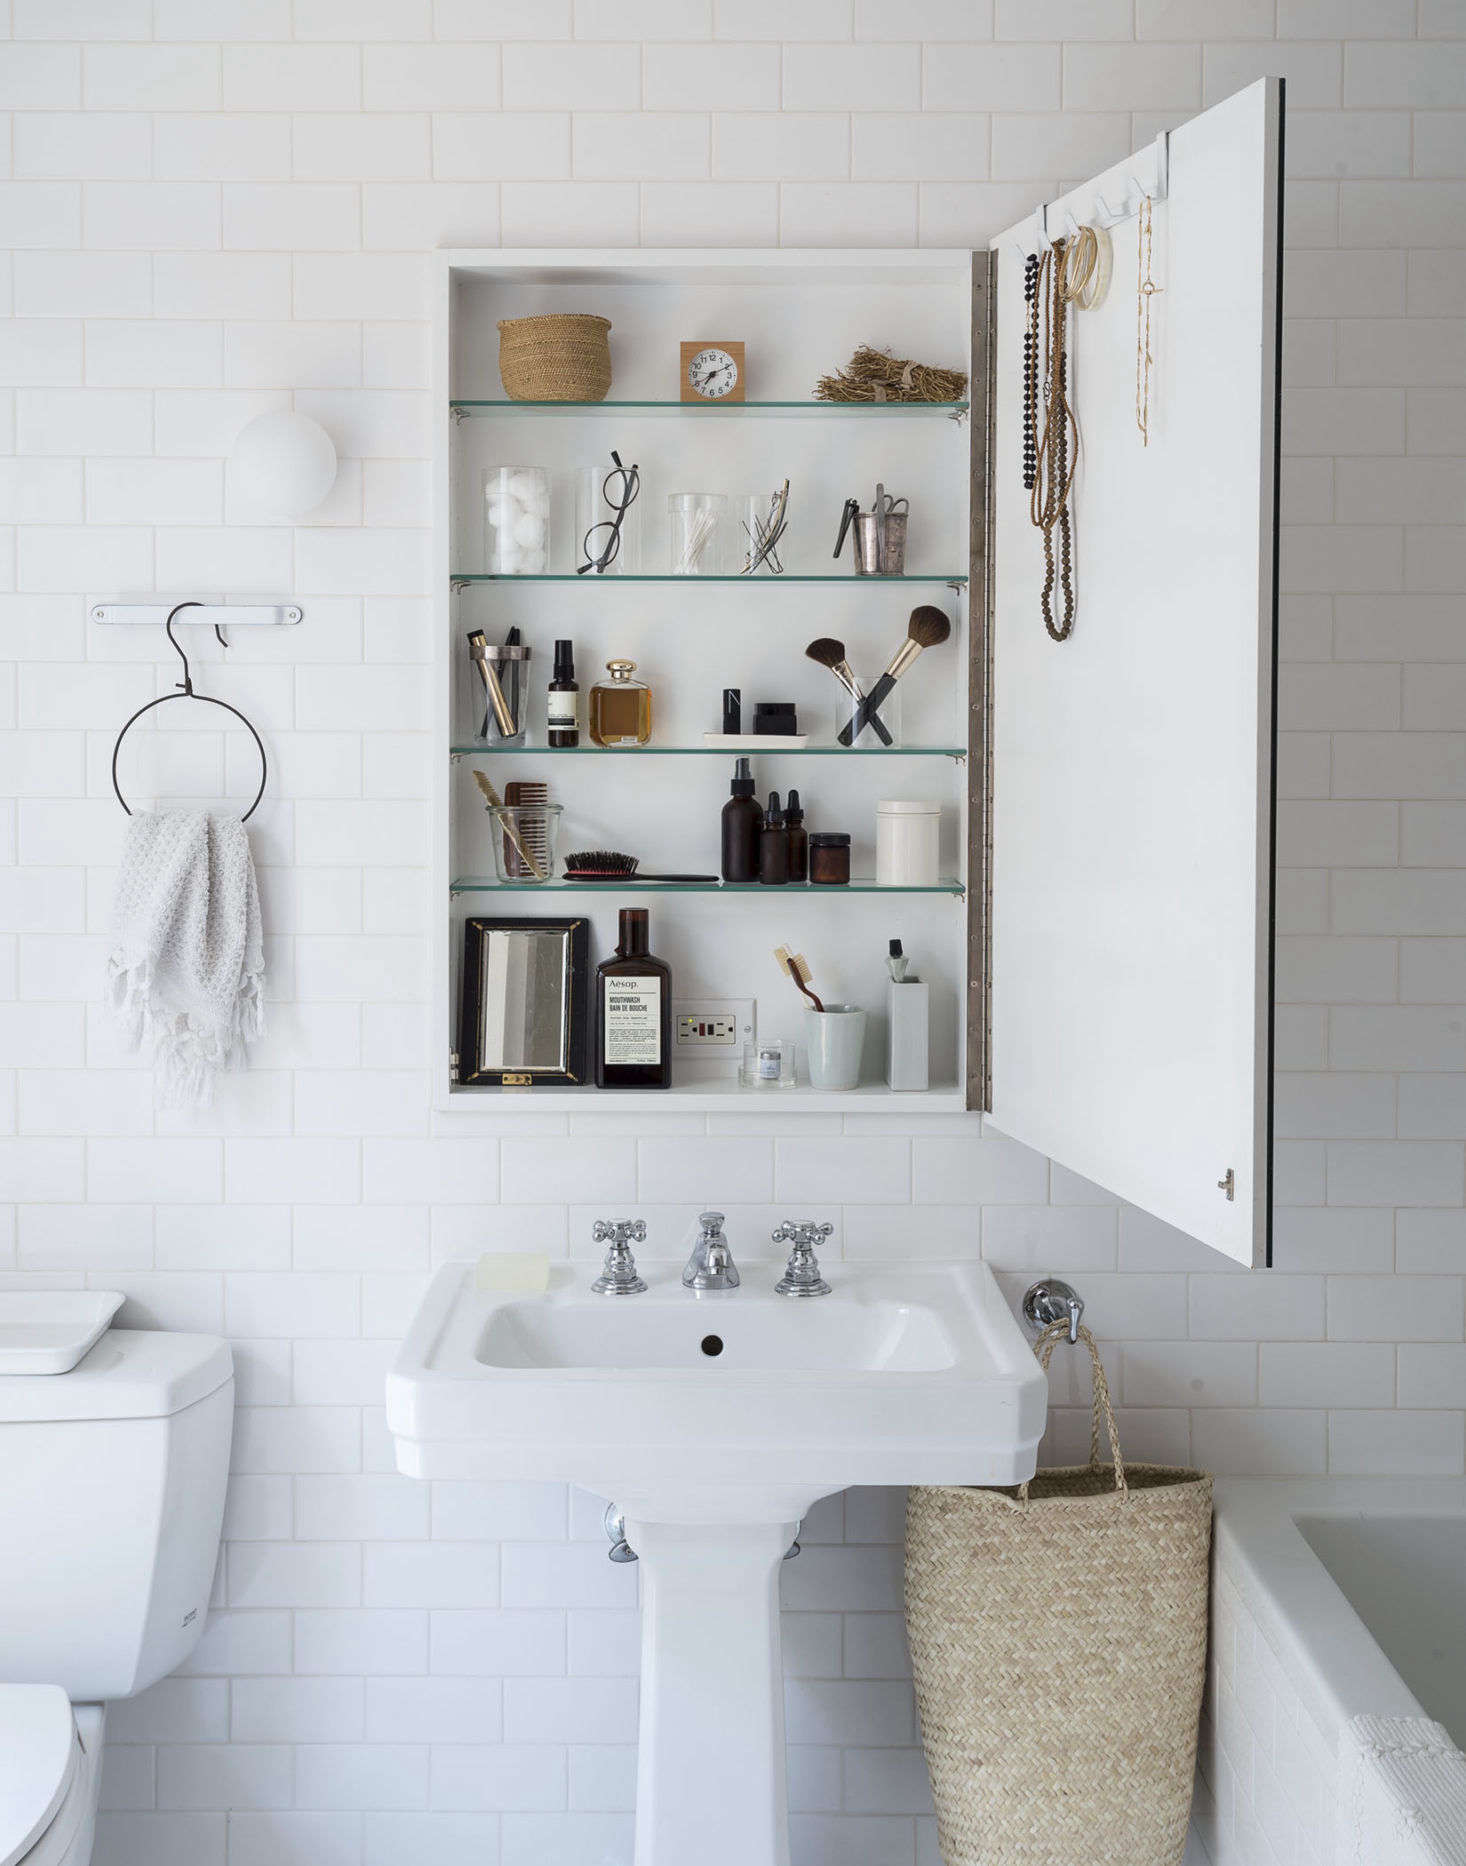 Trending on The Organized Home: Stylish Small Spaces - Remodelista